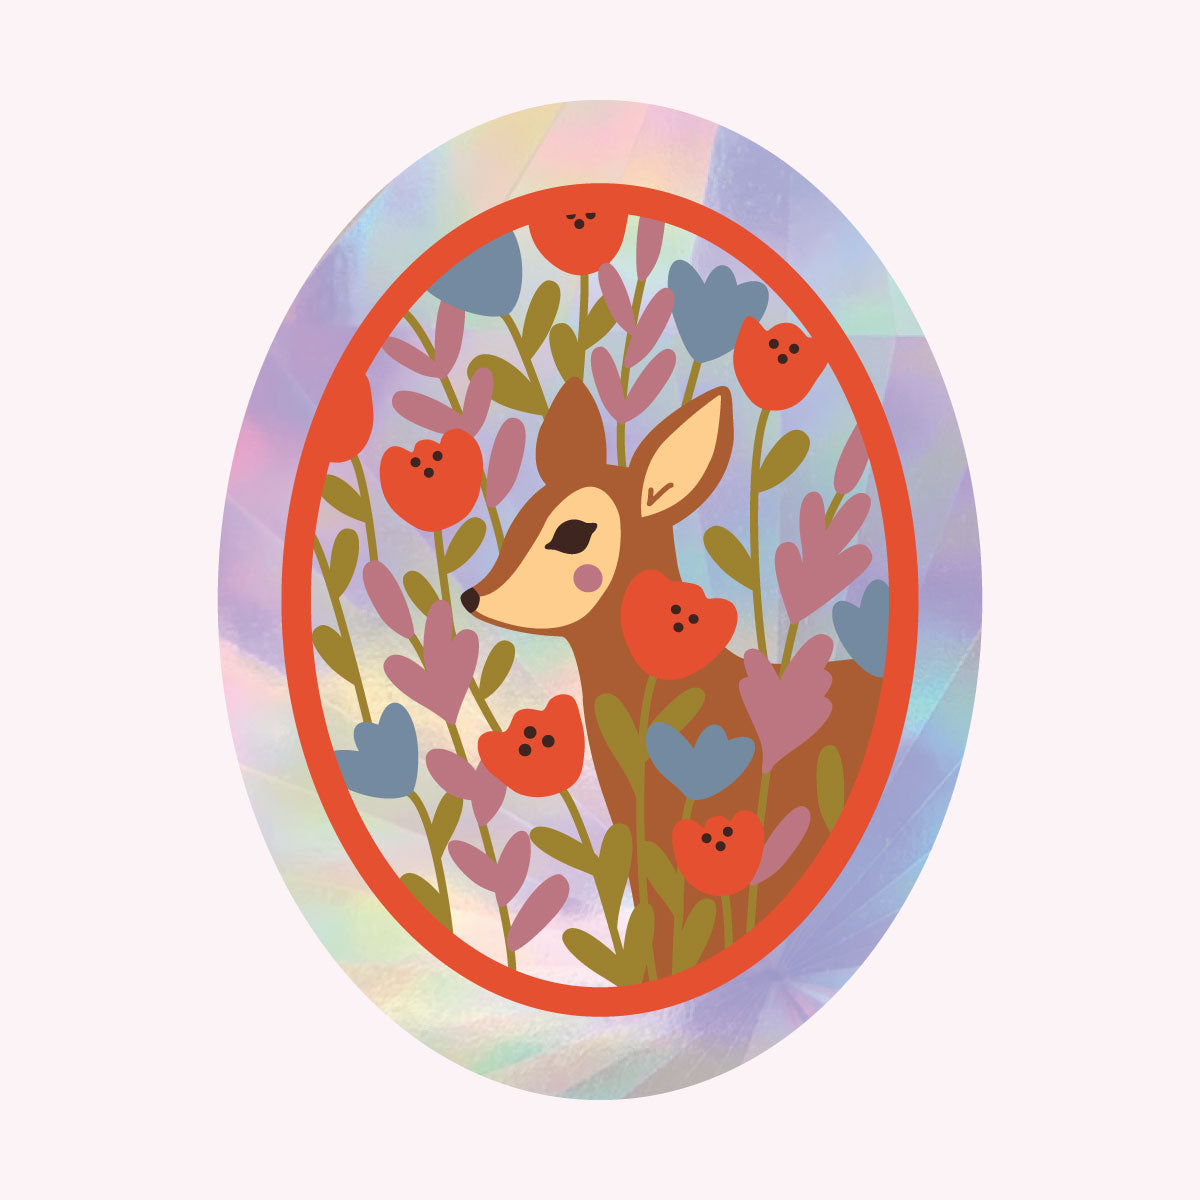 Sun Catcher Decal - Deer with JUSTINE GILBUENA